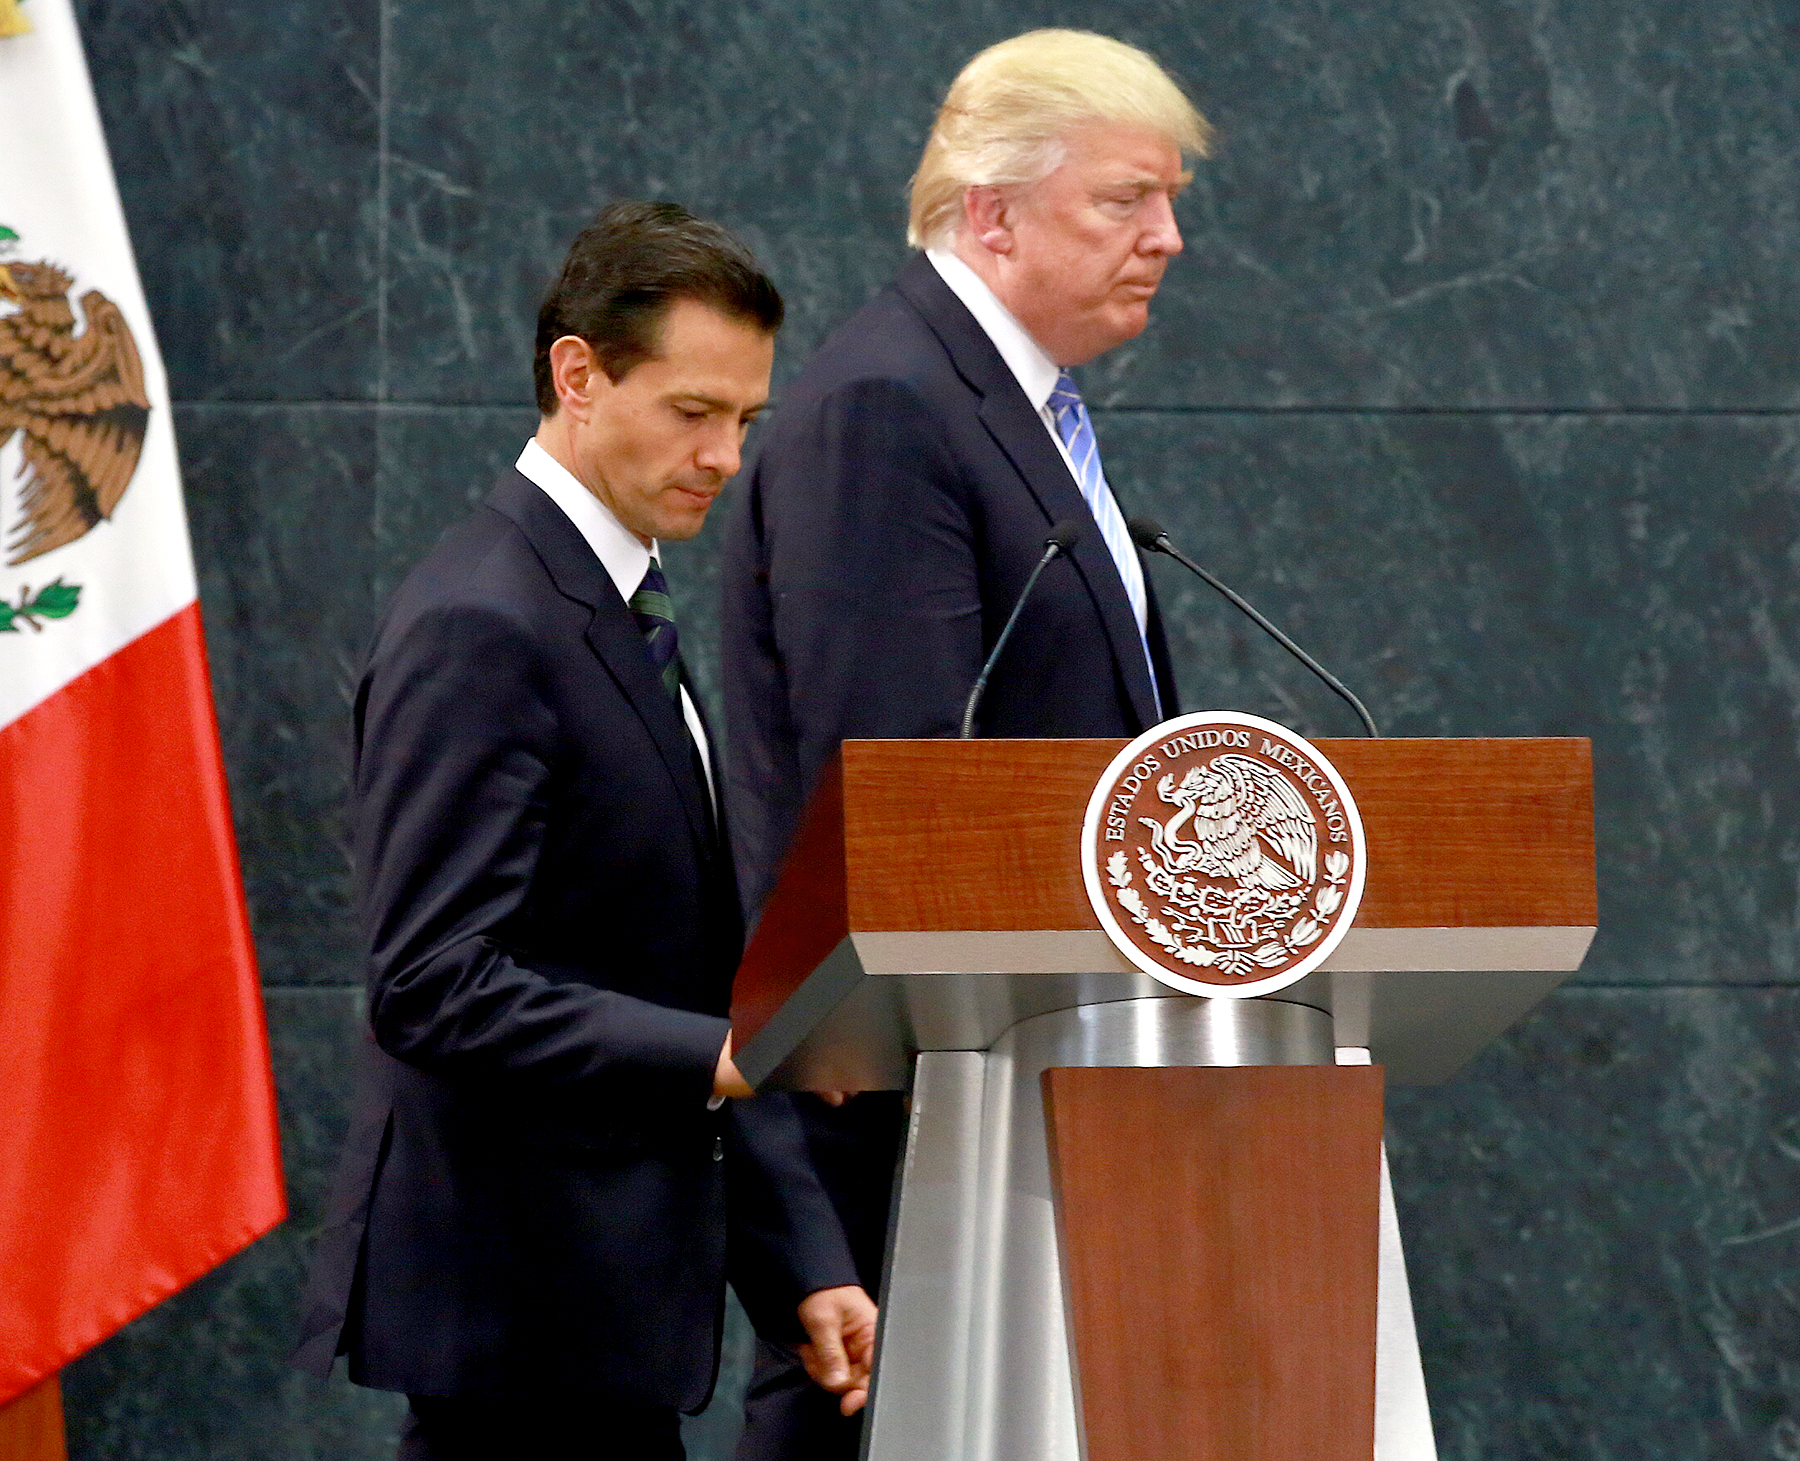 Donald Trump and Enrique Pena Nieto walk on stage for a joint conference in Mexico City, Mexico, on Wednesday, Aug. 31, 2016.